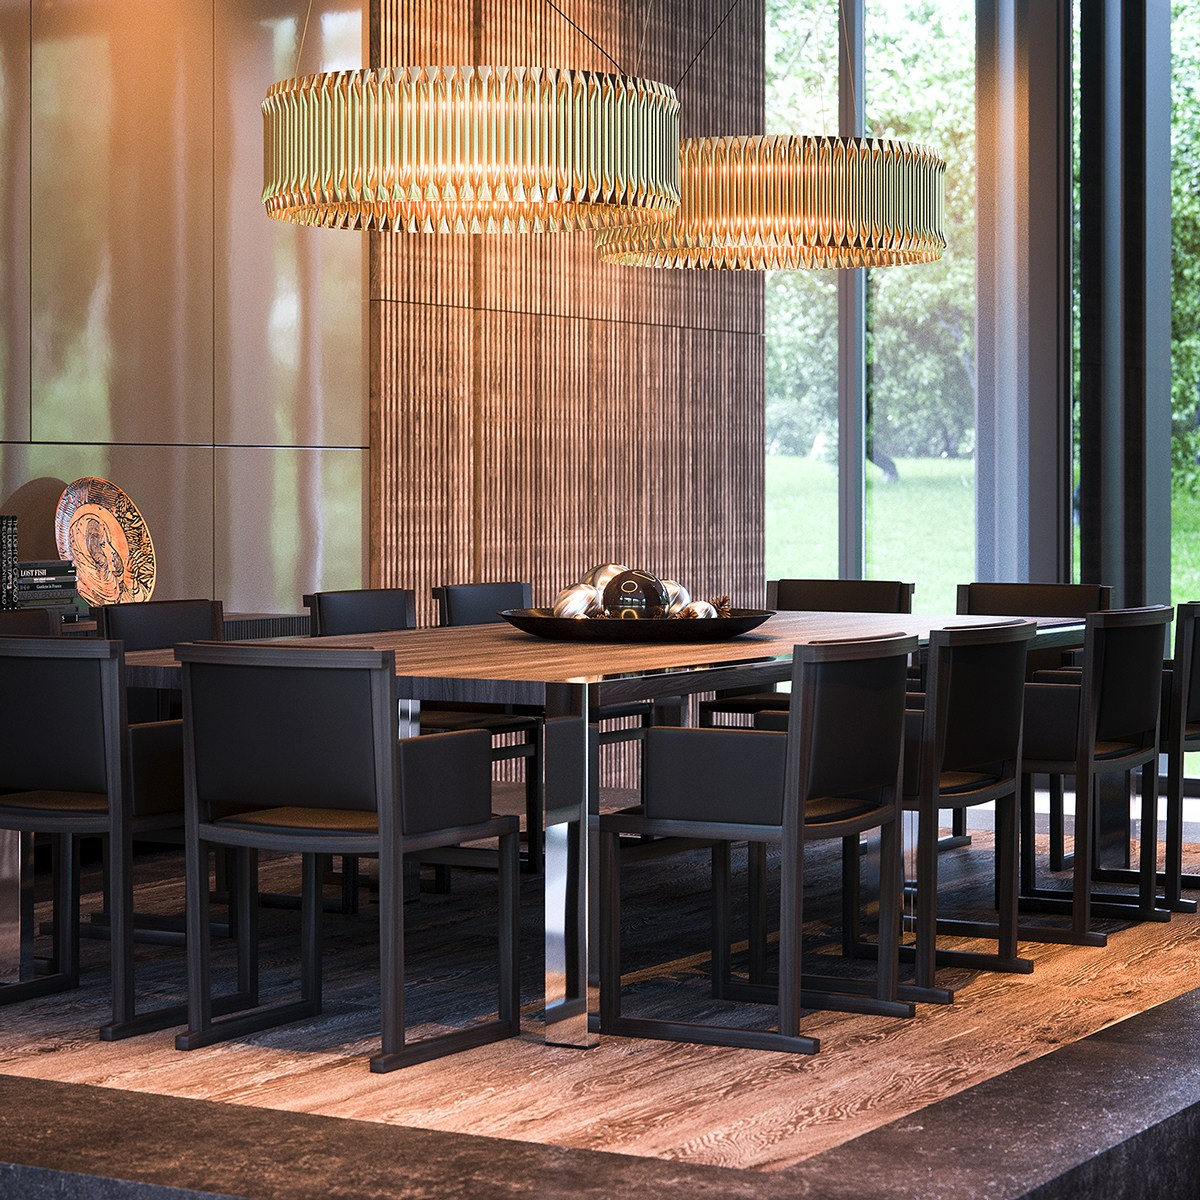 Luxury Dining Room With Natural Materials - 3 natural interior concepts with floor to ceiling windows